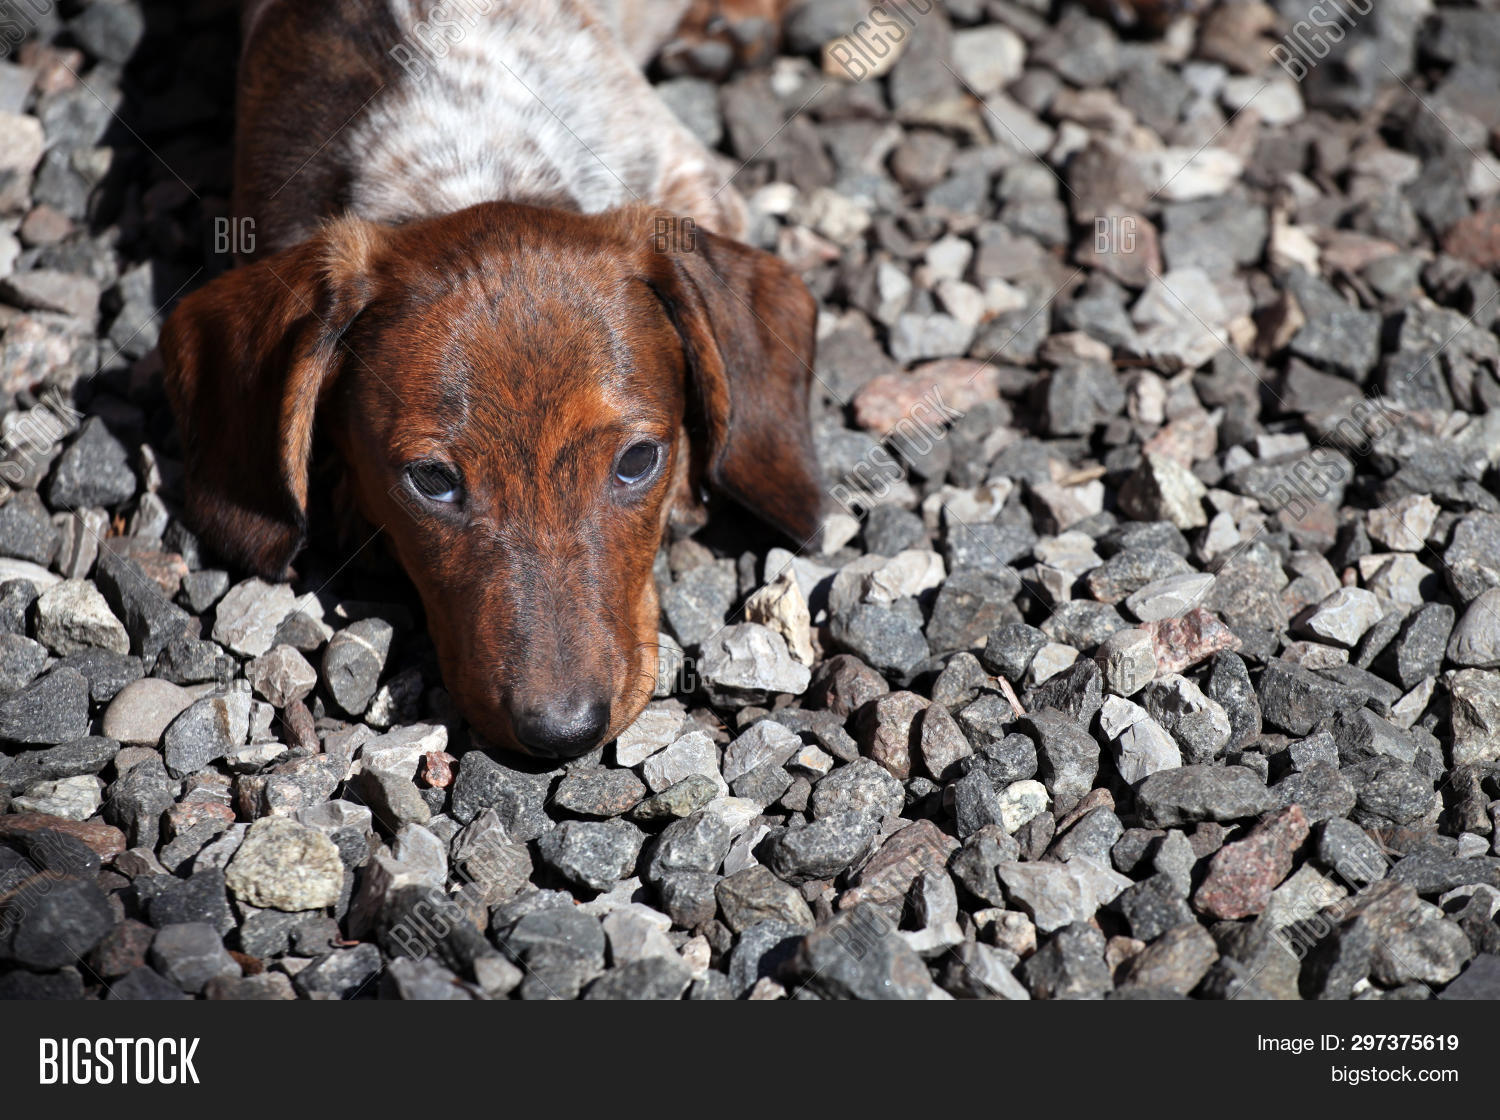 Funny Dachshund Puppy Image Photo Free Trial Bigstock